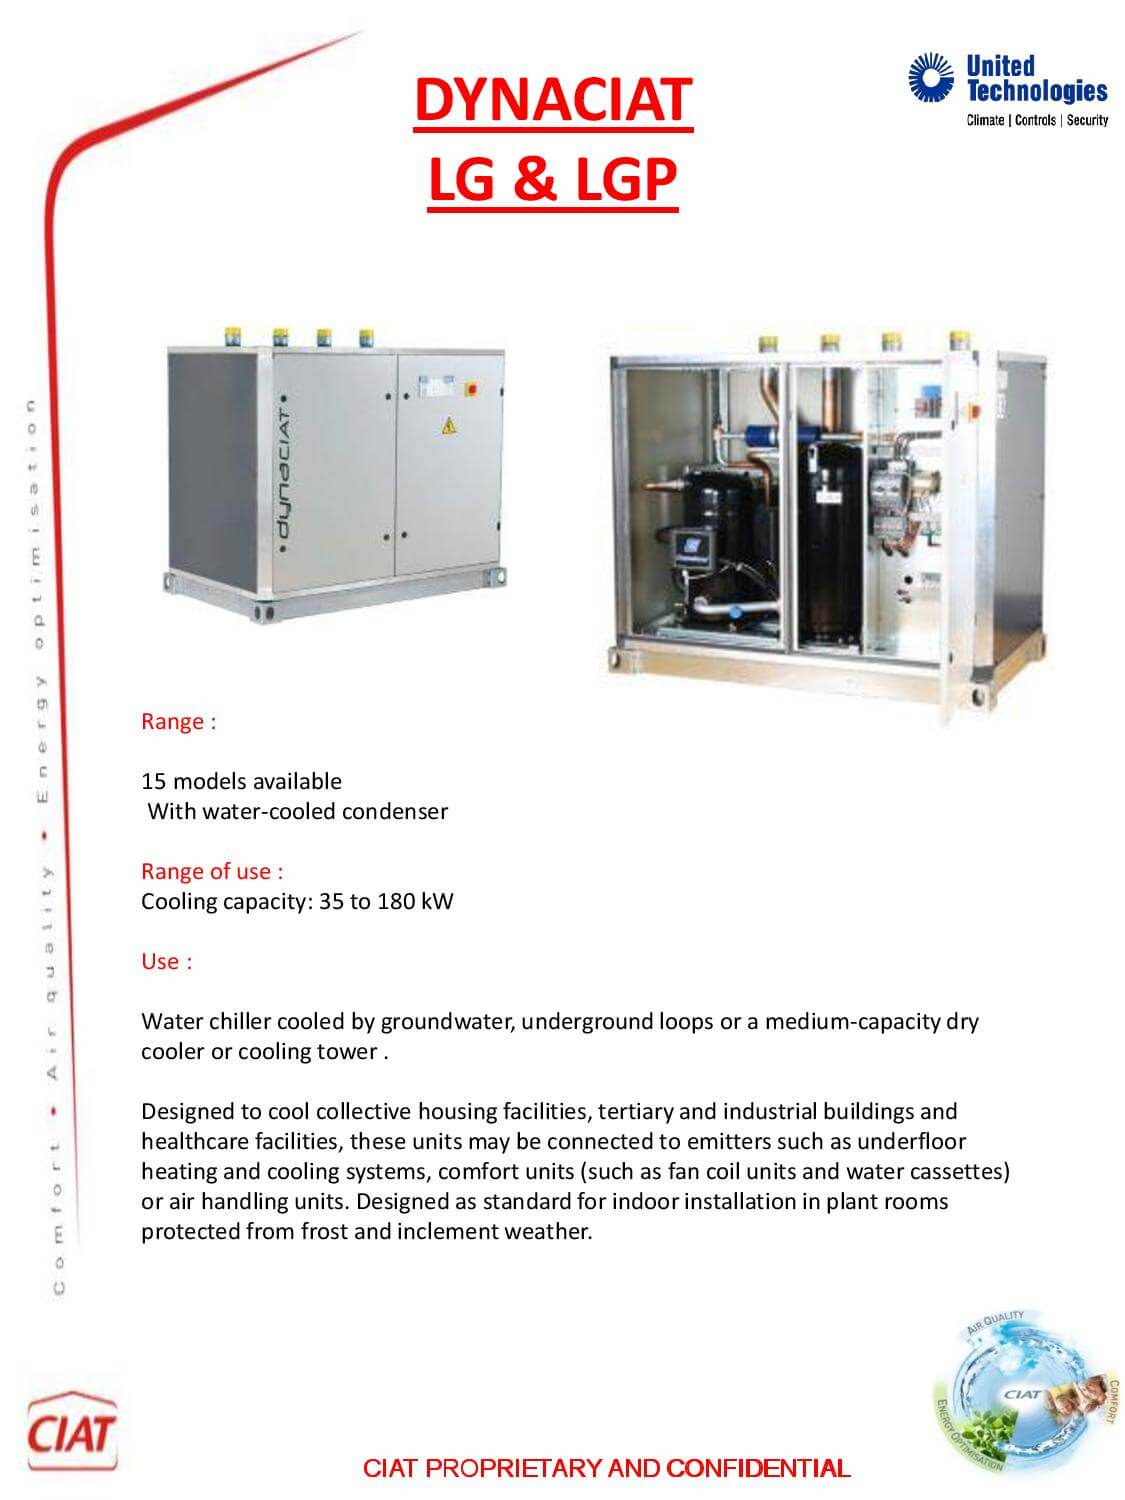 Dynaciat Lg Amp Lpg Ciat Air Conditioning And Heating